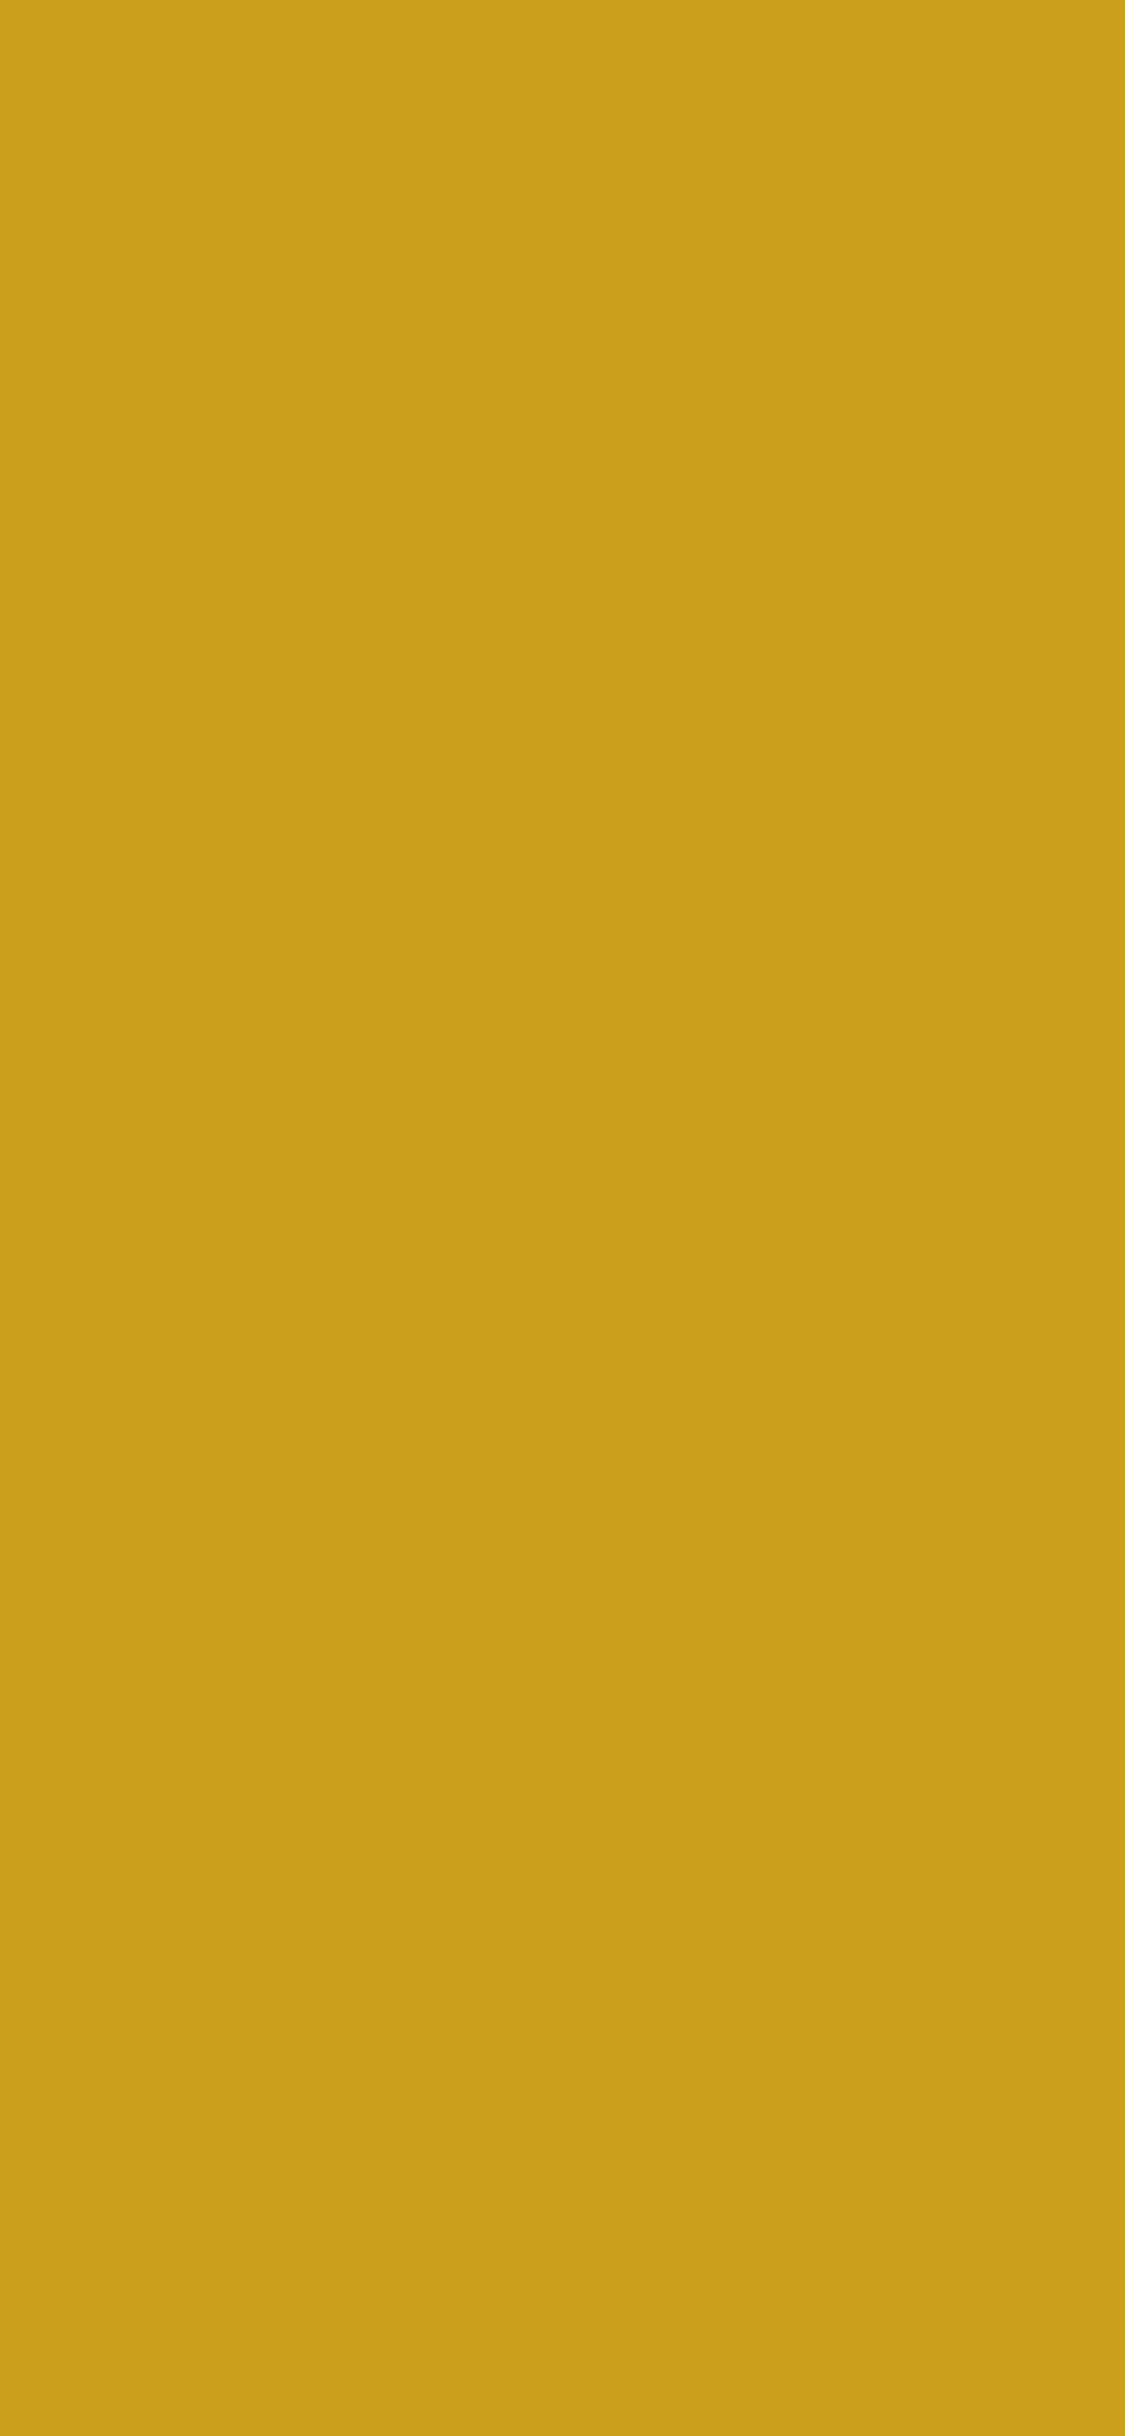 1125x2436 Lemon Curry Solid Color Background